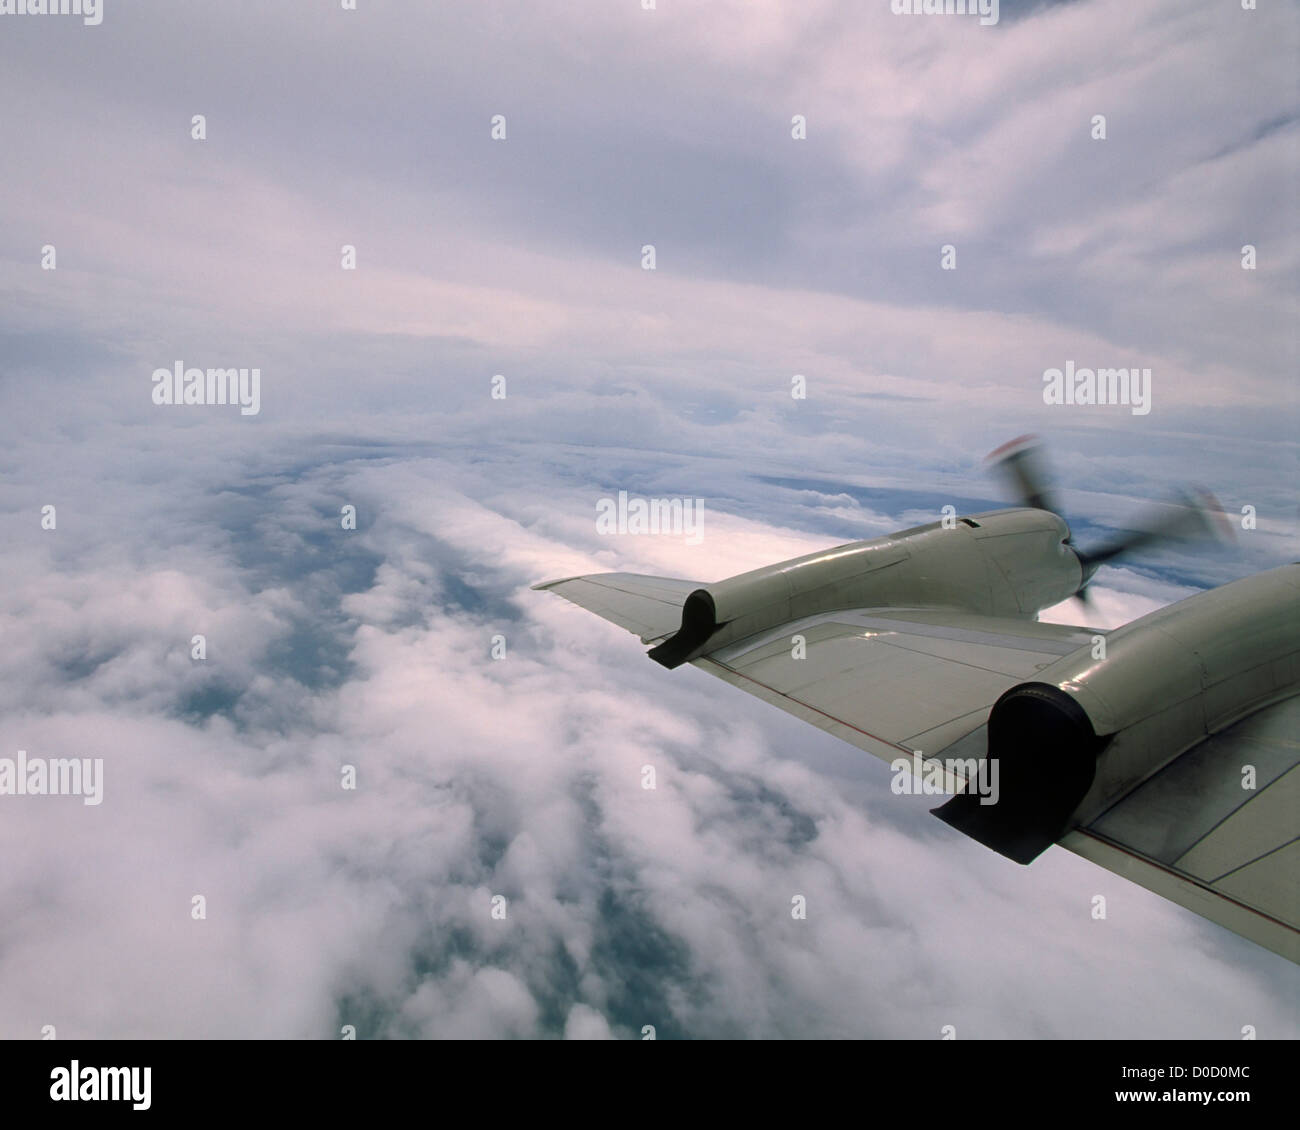 View Outer Bands Hurricane NOAA WP-3D Orion Hurricane Hunter as Crew Guides Craft Toward Eye Storm - Stock Image